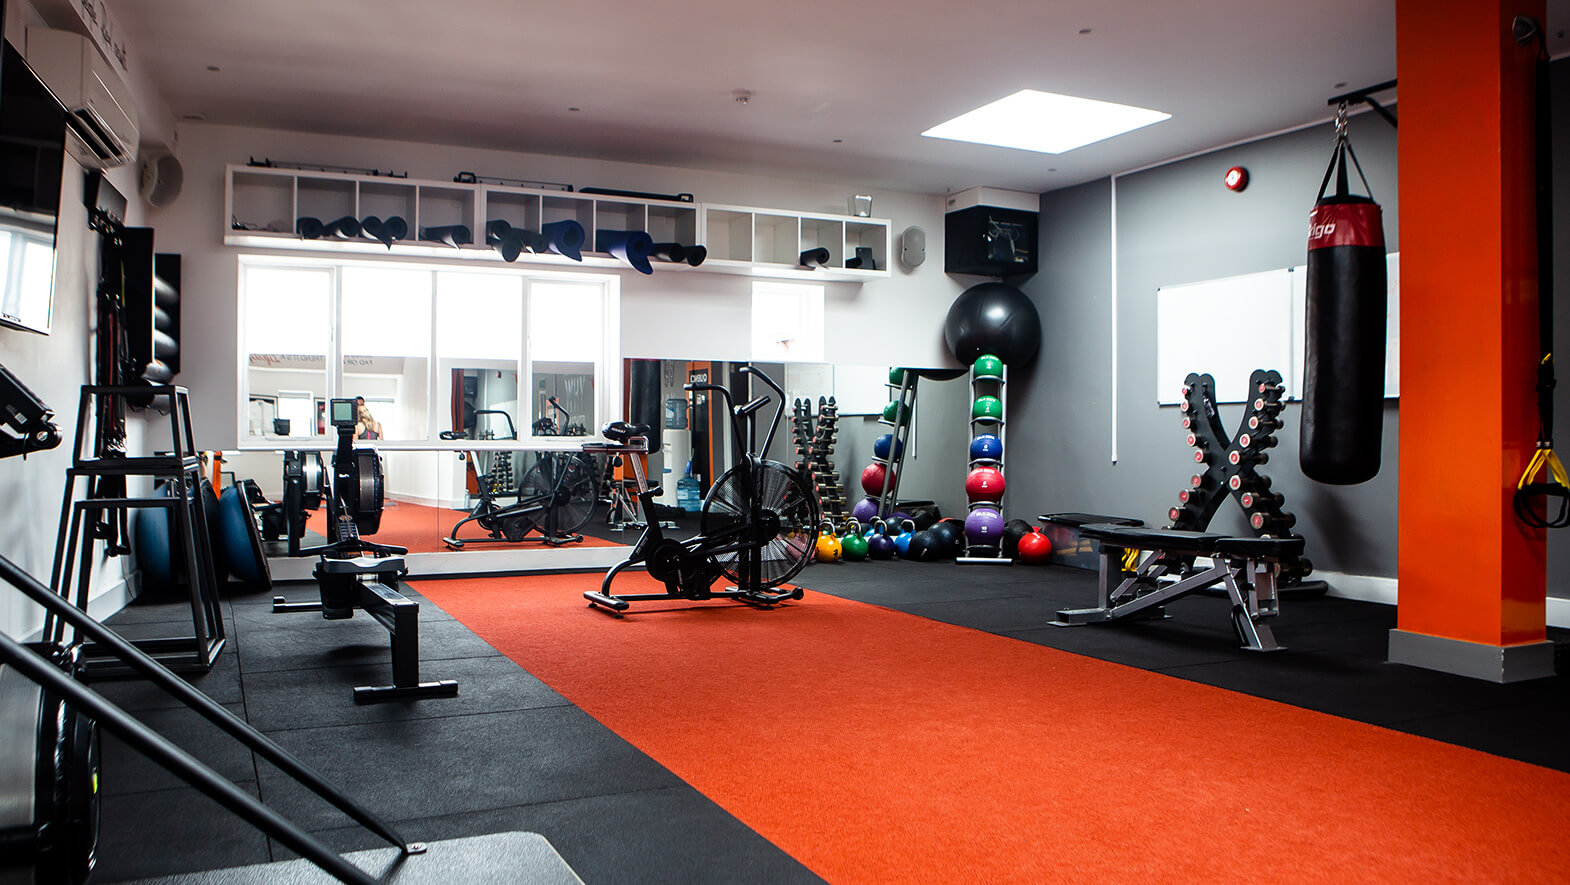 Field of Fitness Gym - Gym